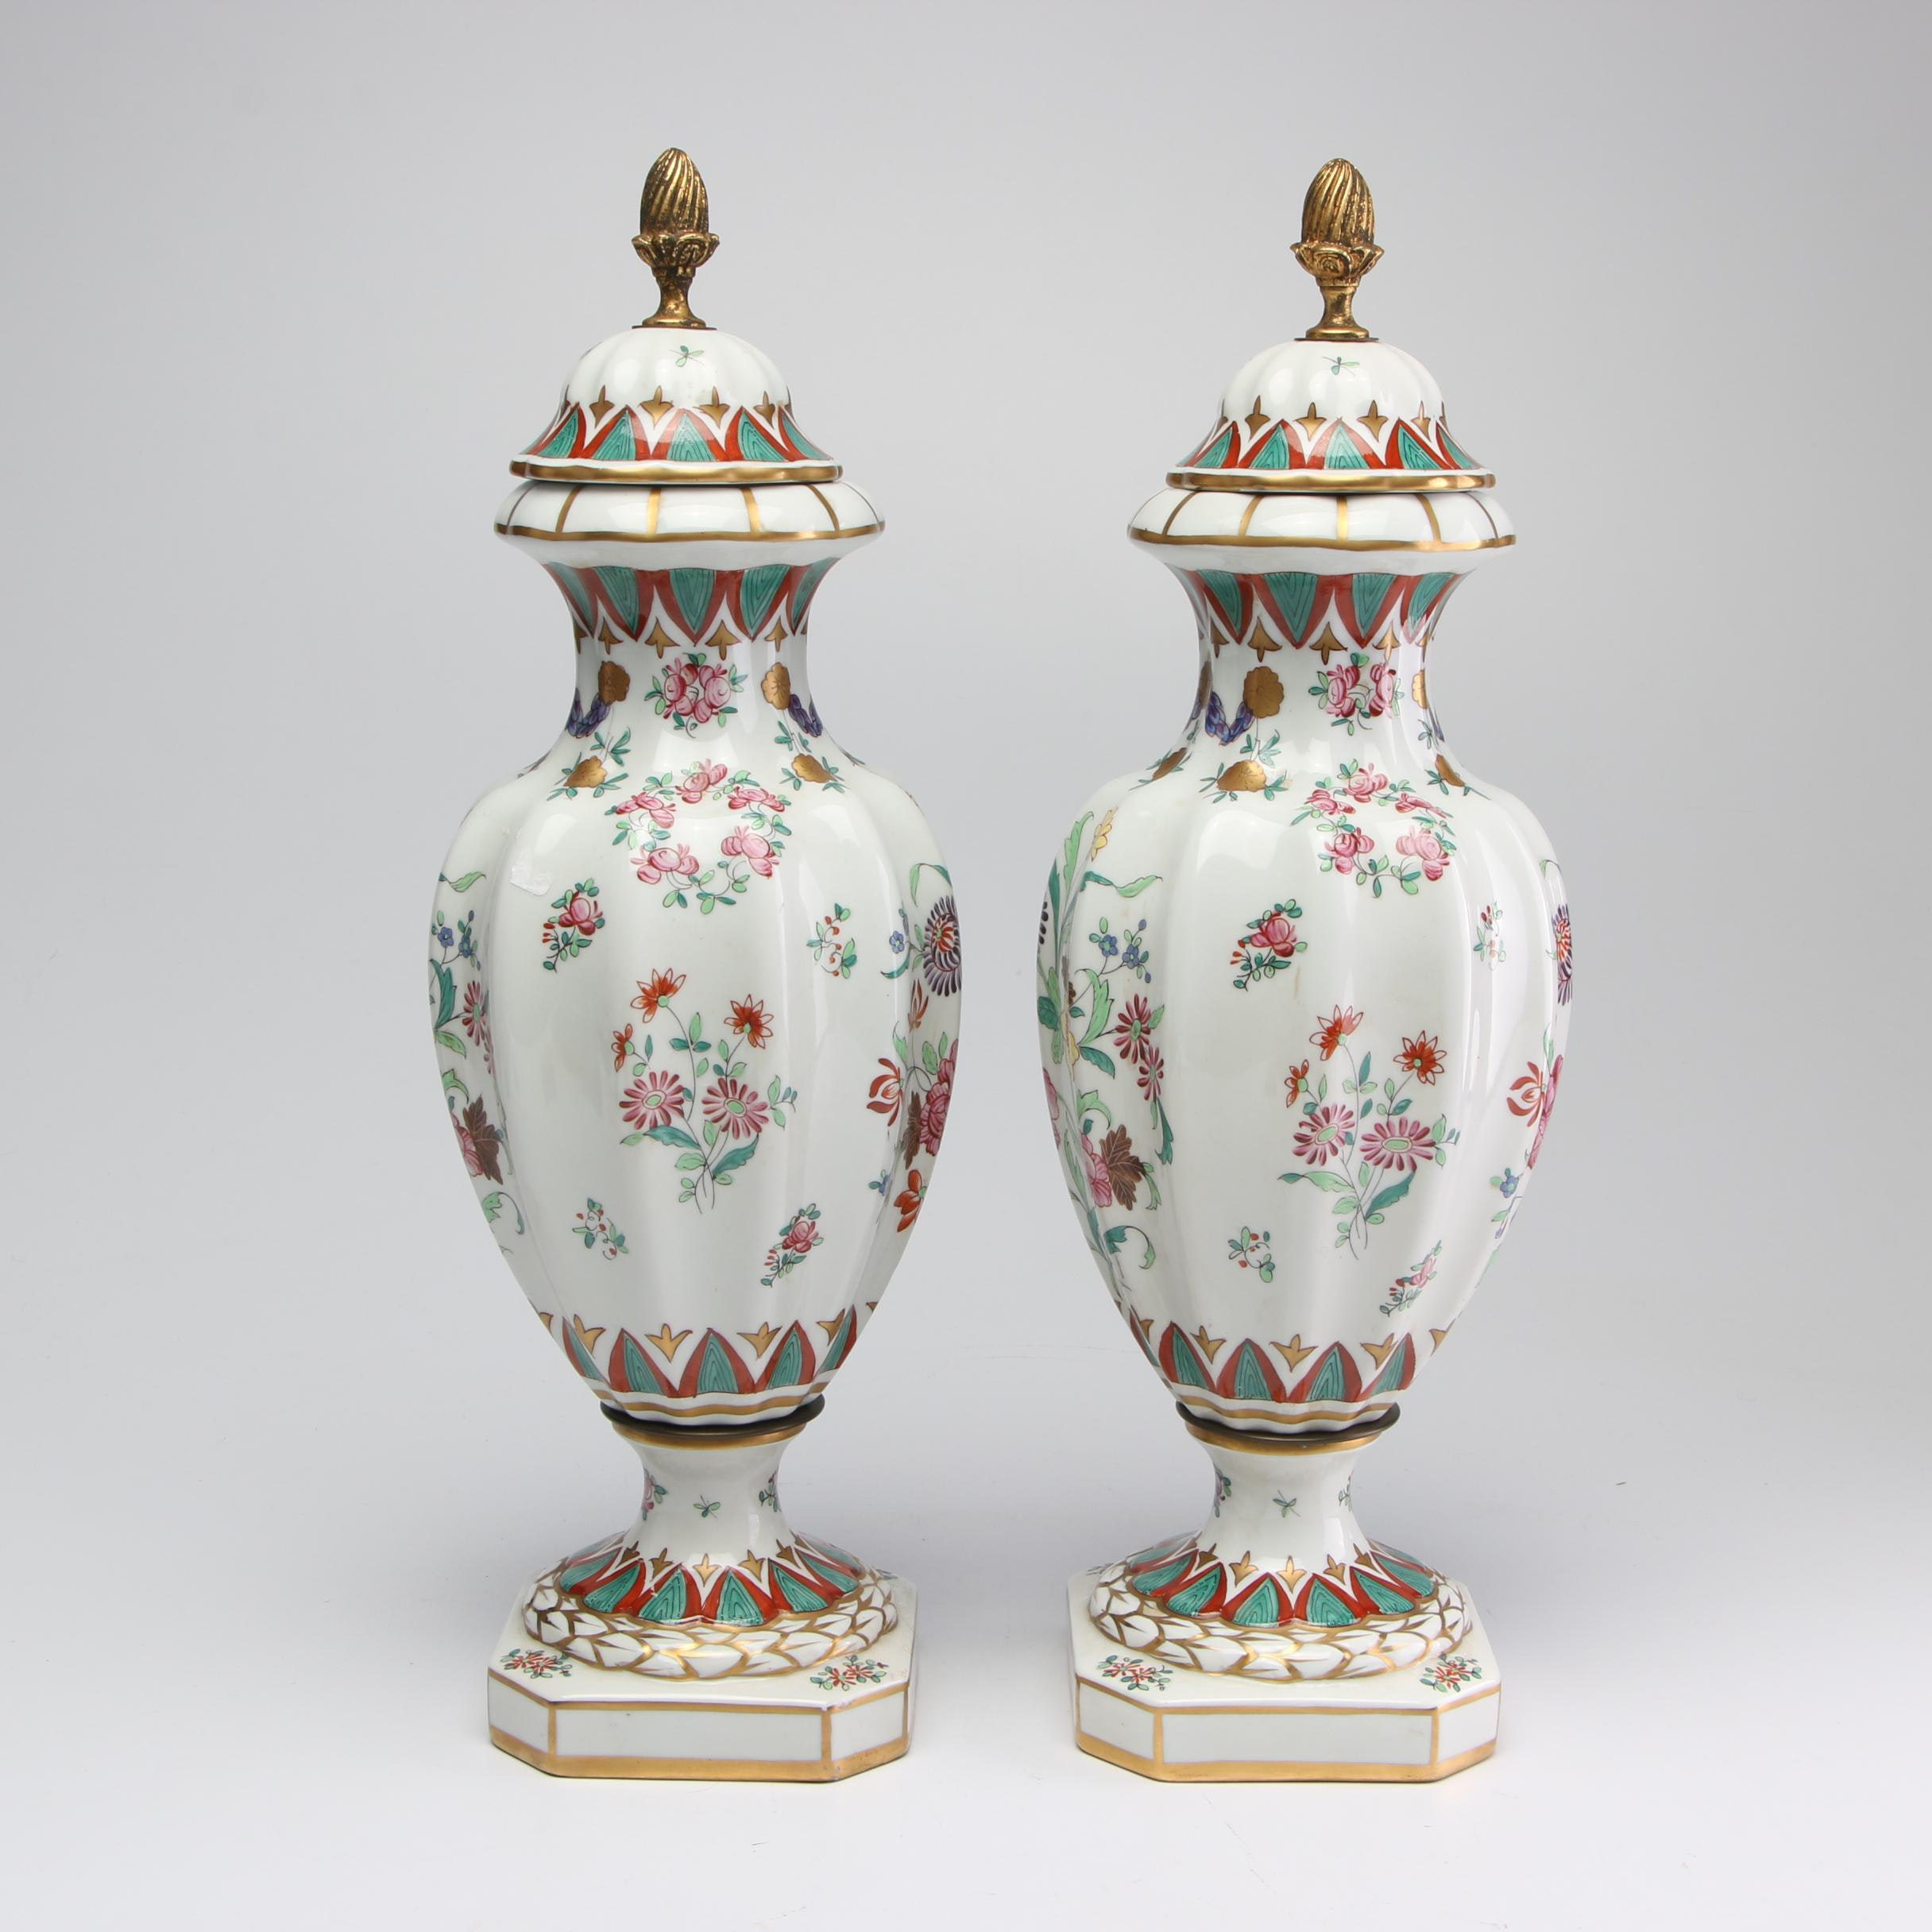 Arnart French Lidded Floor Urns